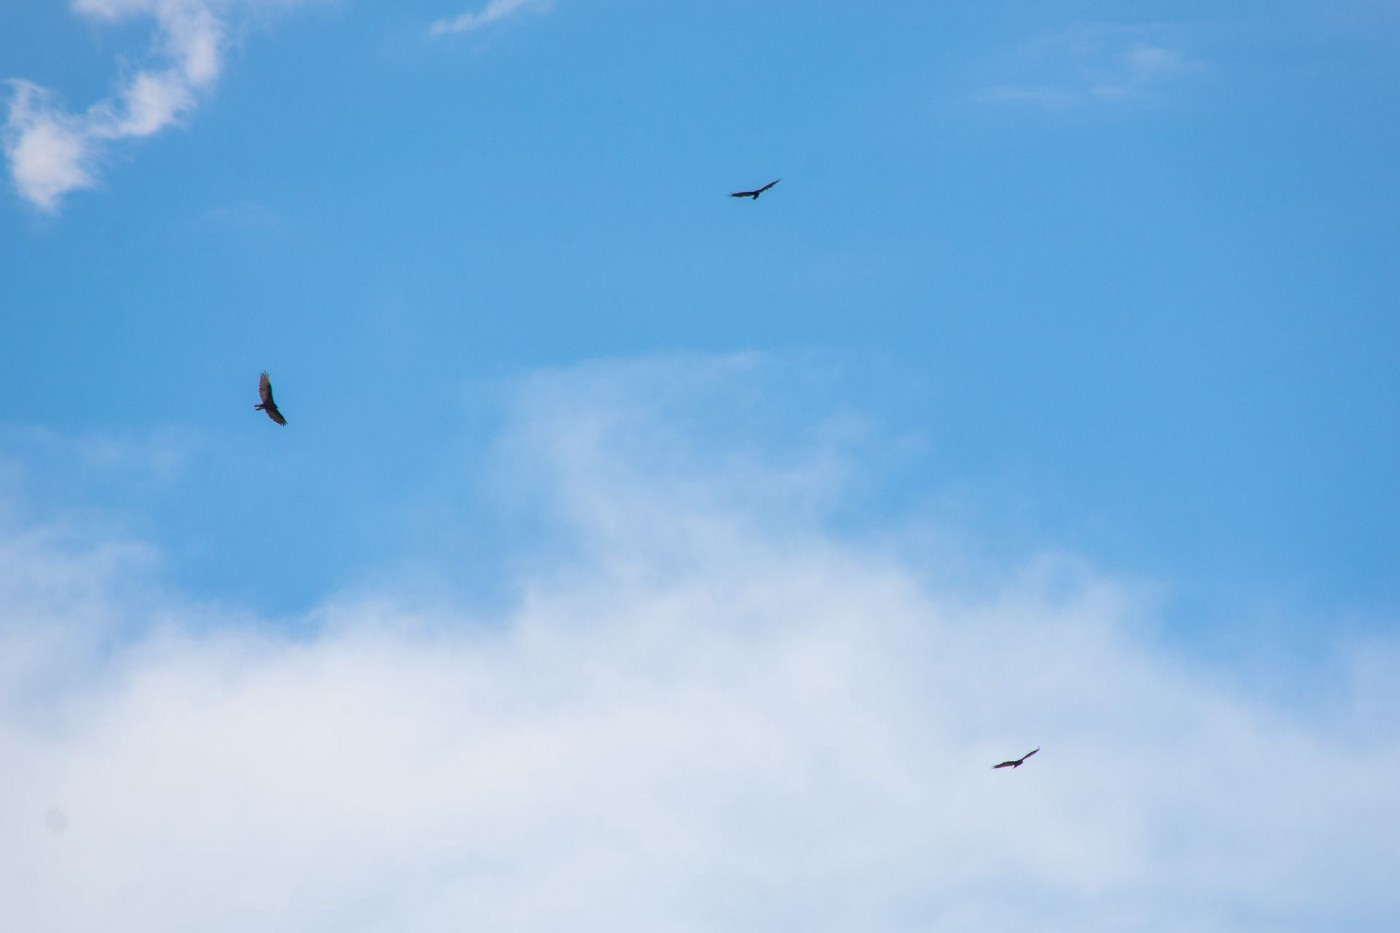 A photo of three birds flying in a blue sky with faint clouds.